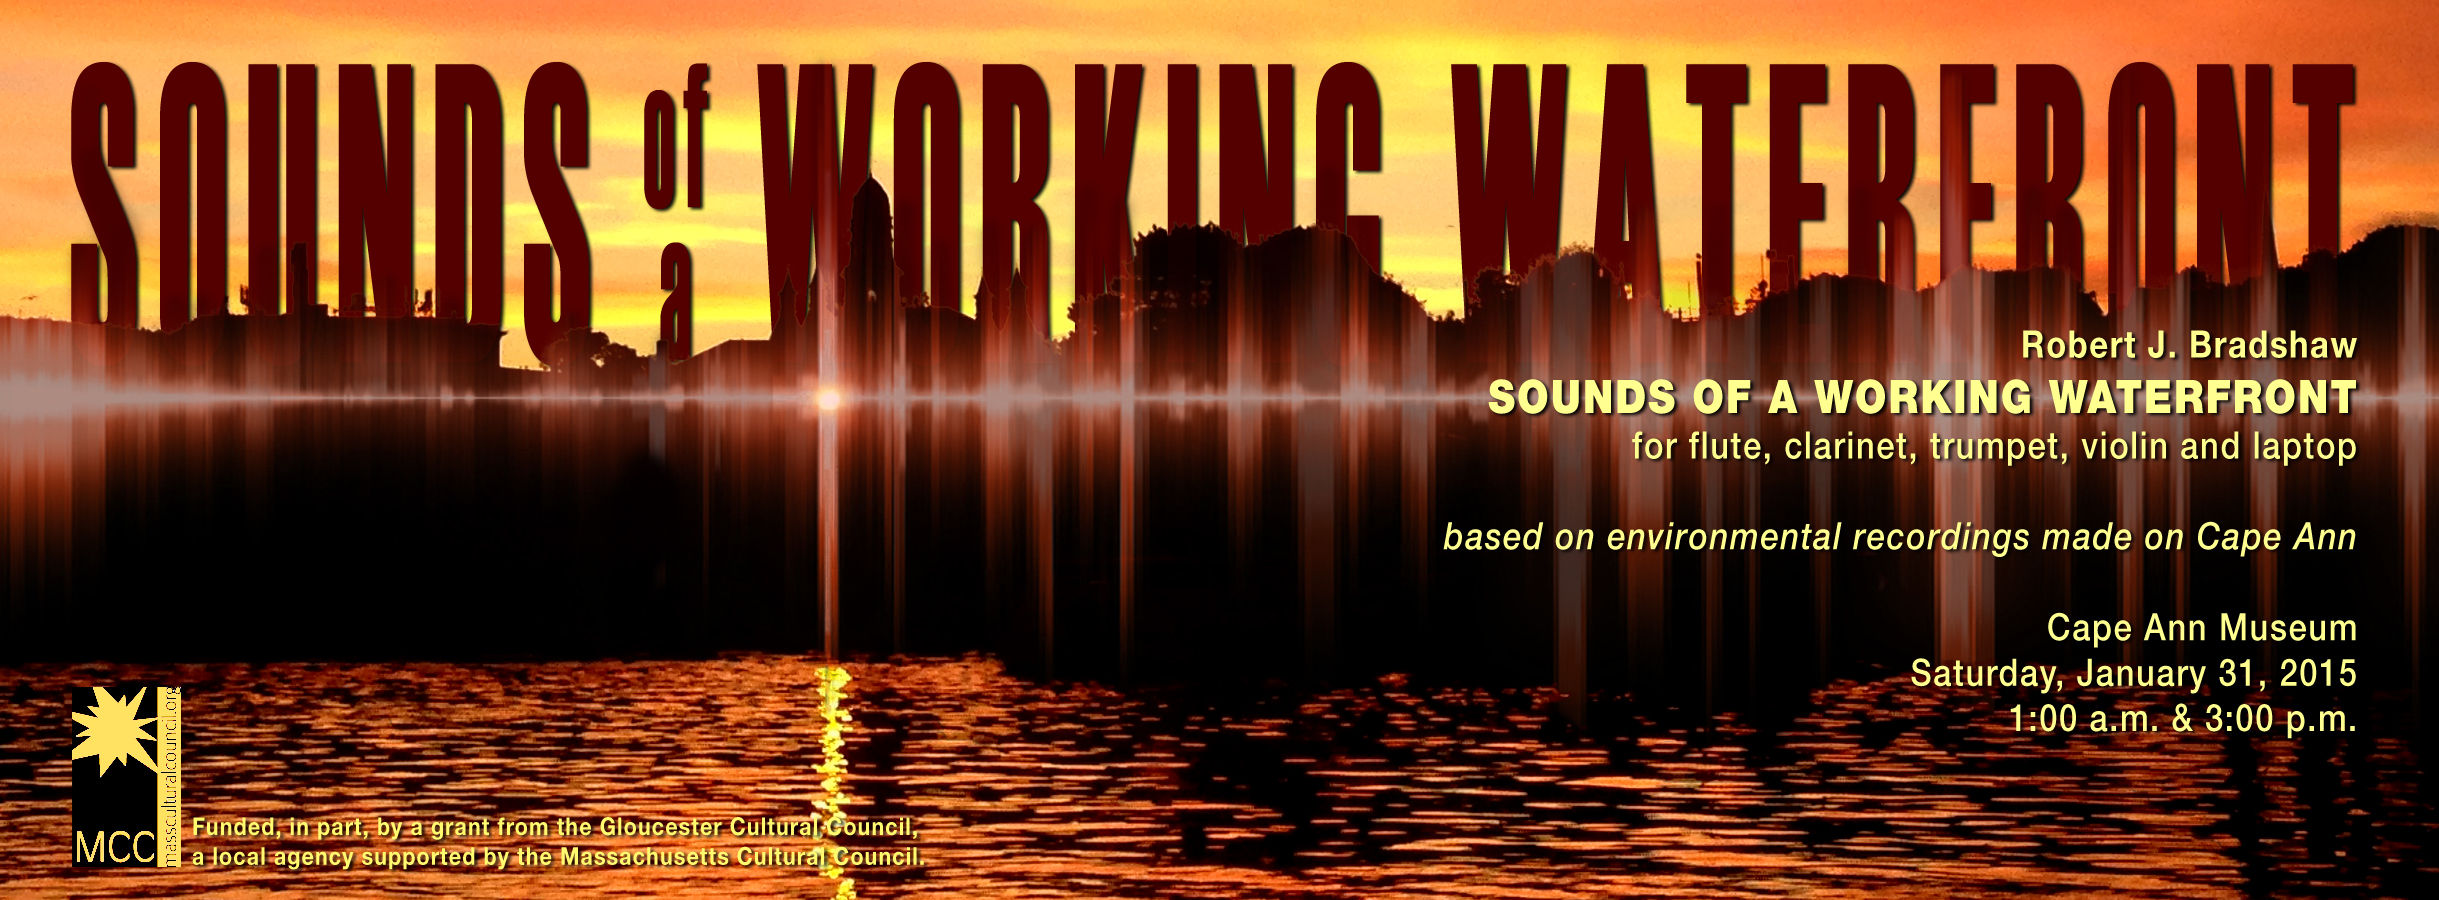 Sounds of a Working Waterfront